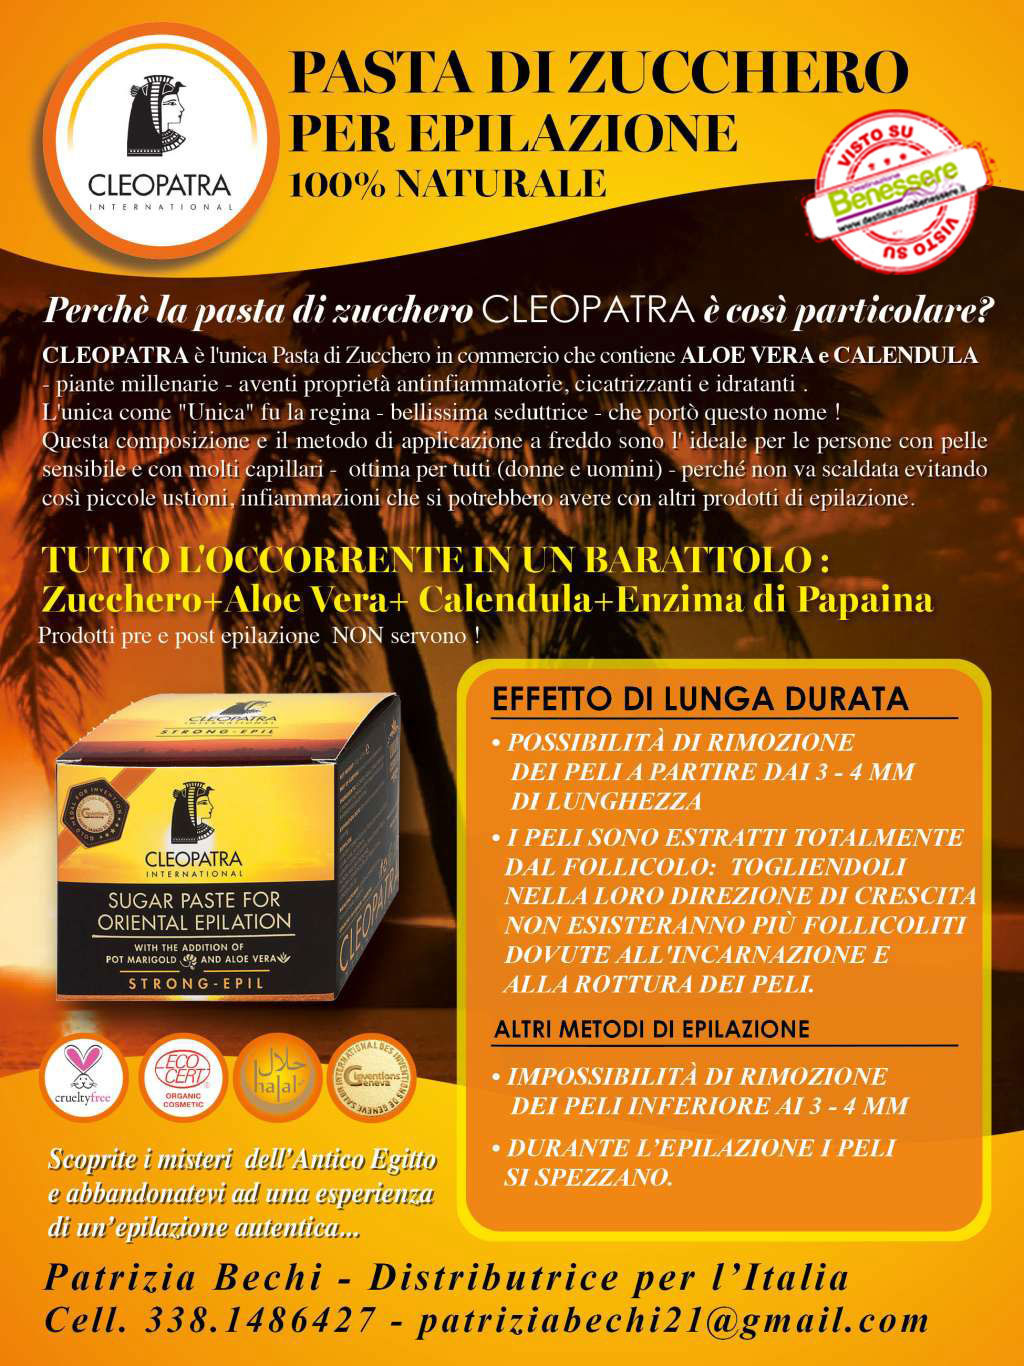 epilazione naturale cleopatra international